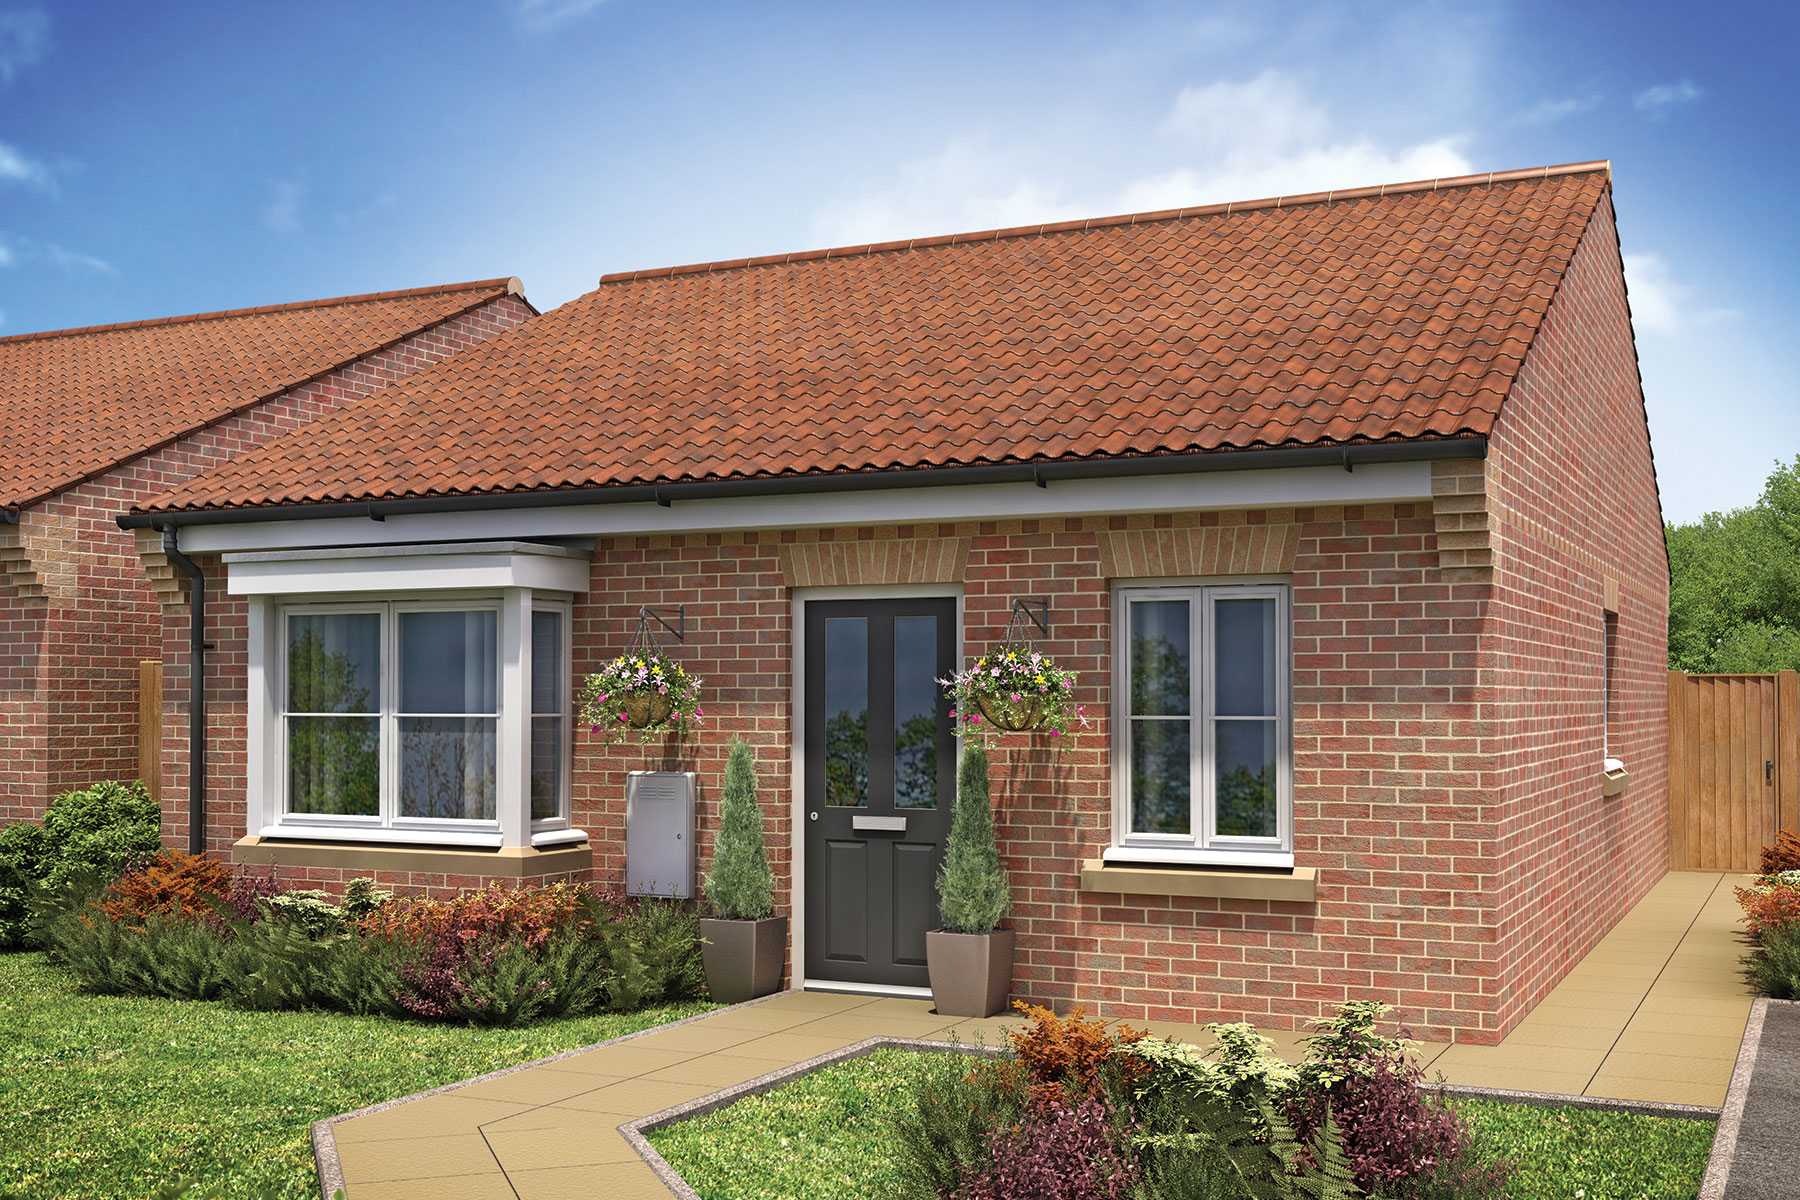 Galley hill taylor wimpey for Bungalow show homes